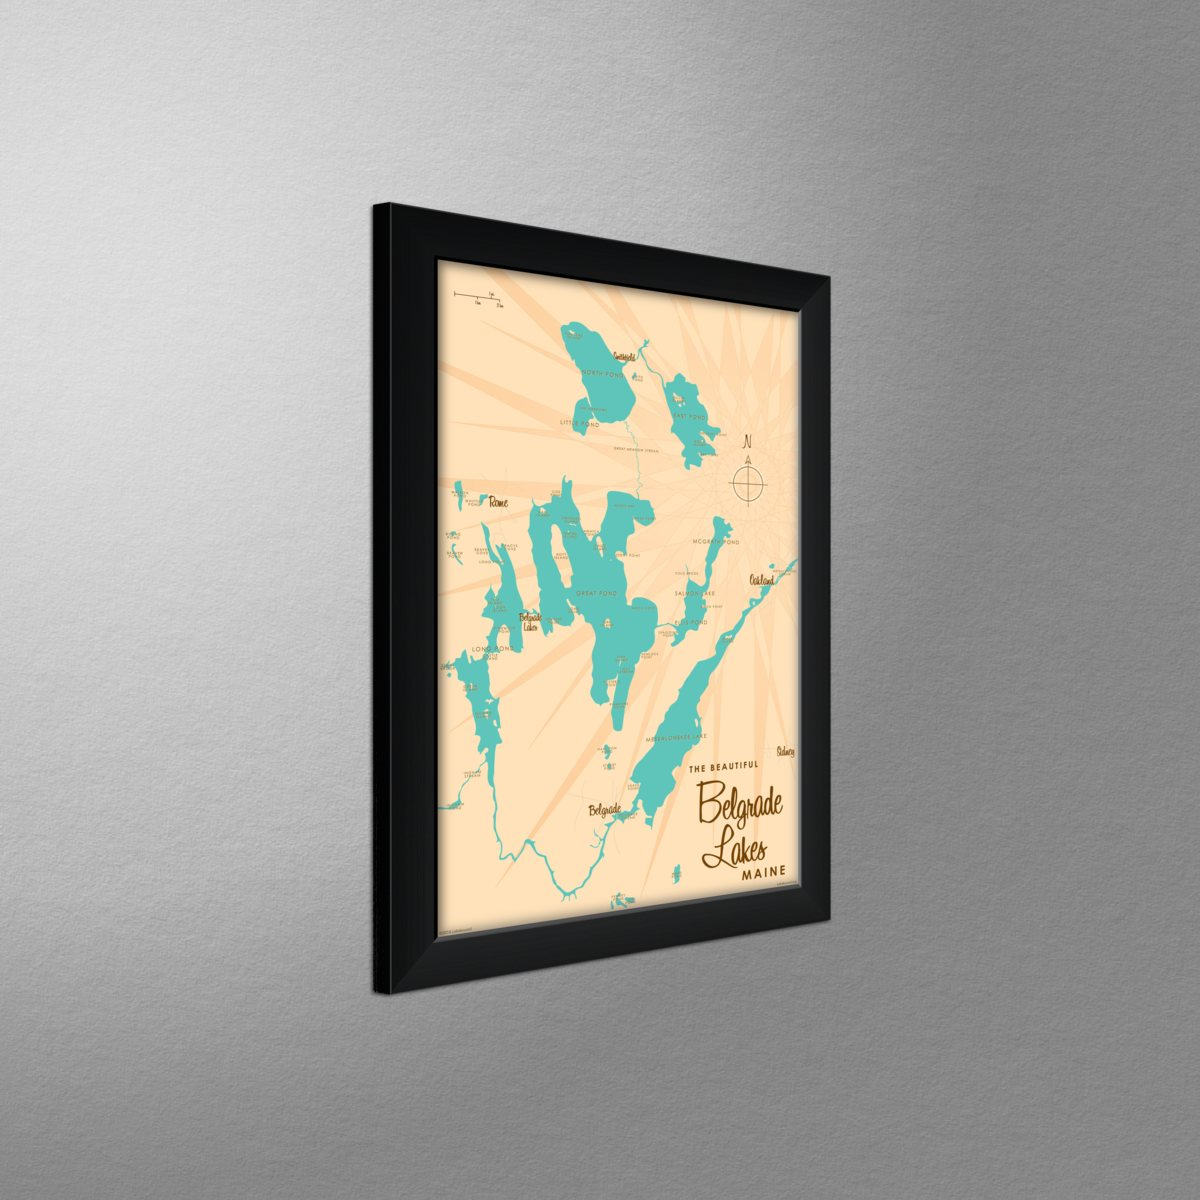 Belgrade Lakes Maine Map Framed Art Print By Lakebound Print Size